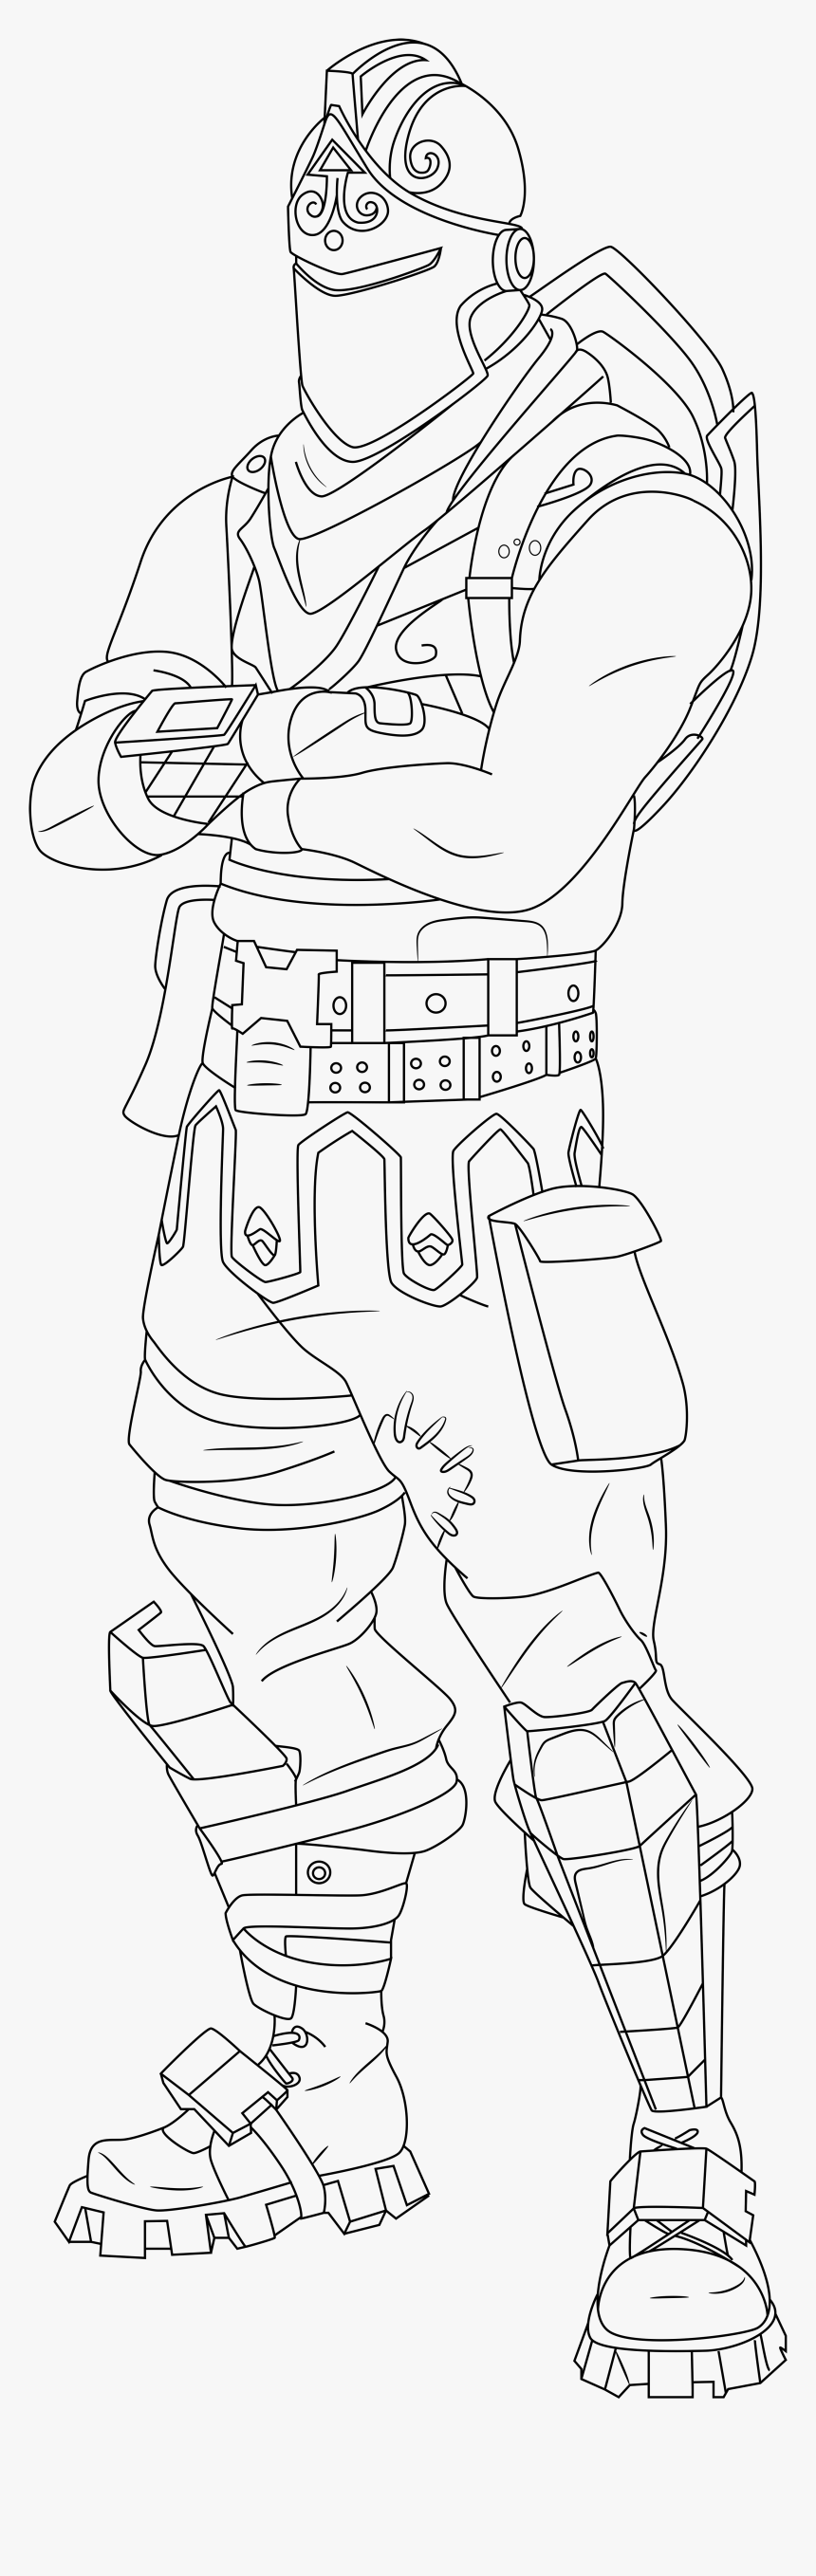 Fortnite Coloring Pages Printable Hd Png Download Kindpng